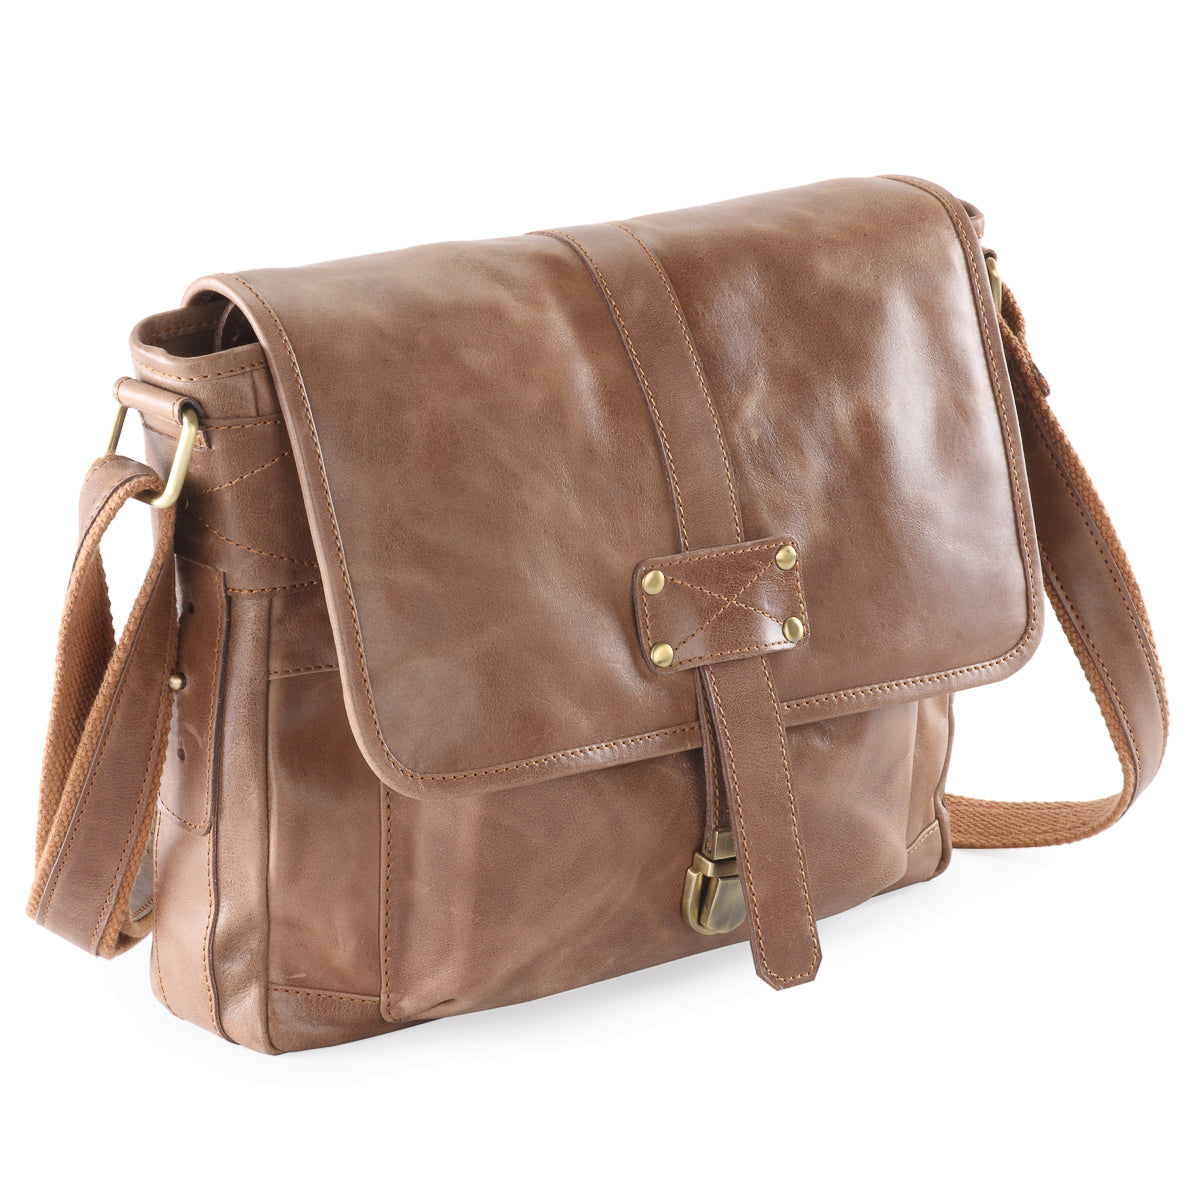 Frango Macbook Messenger Bag #UM57